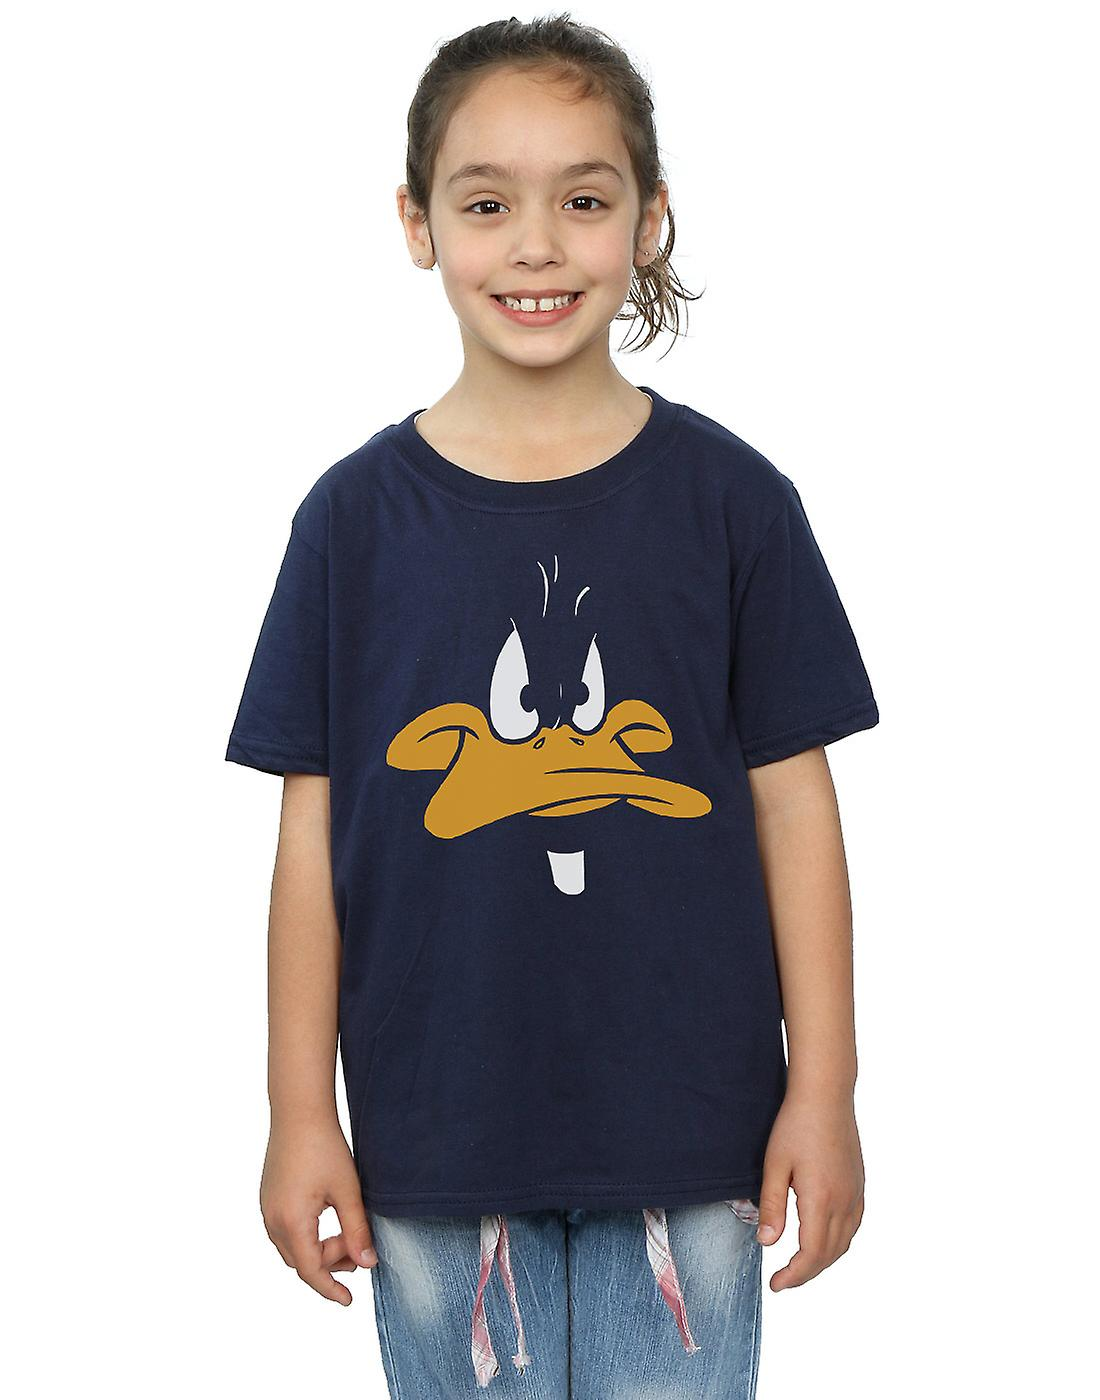 Looney Tunes piger Daffy Duck stor ansigt T-Shirt